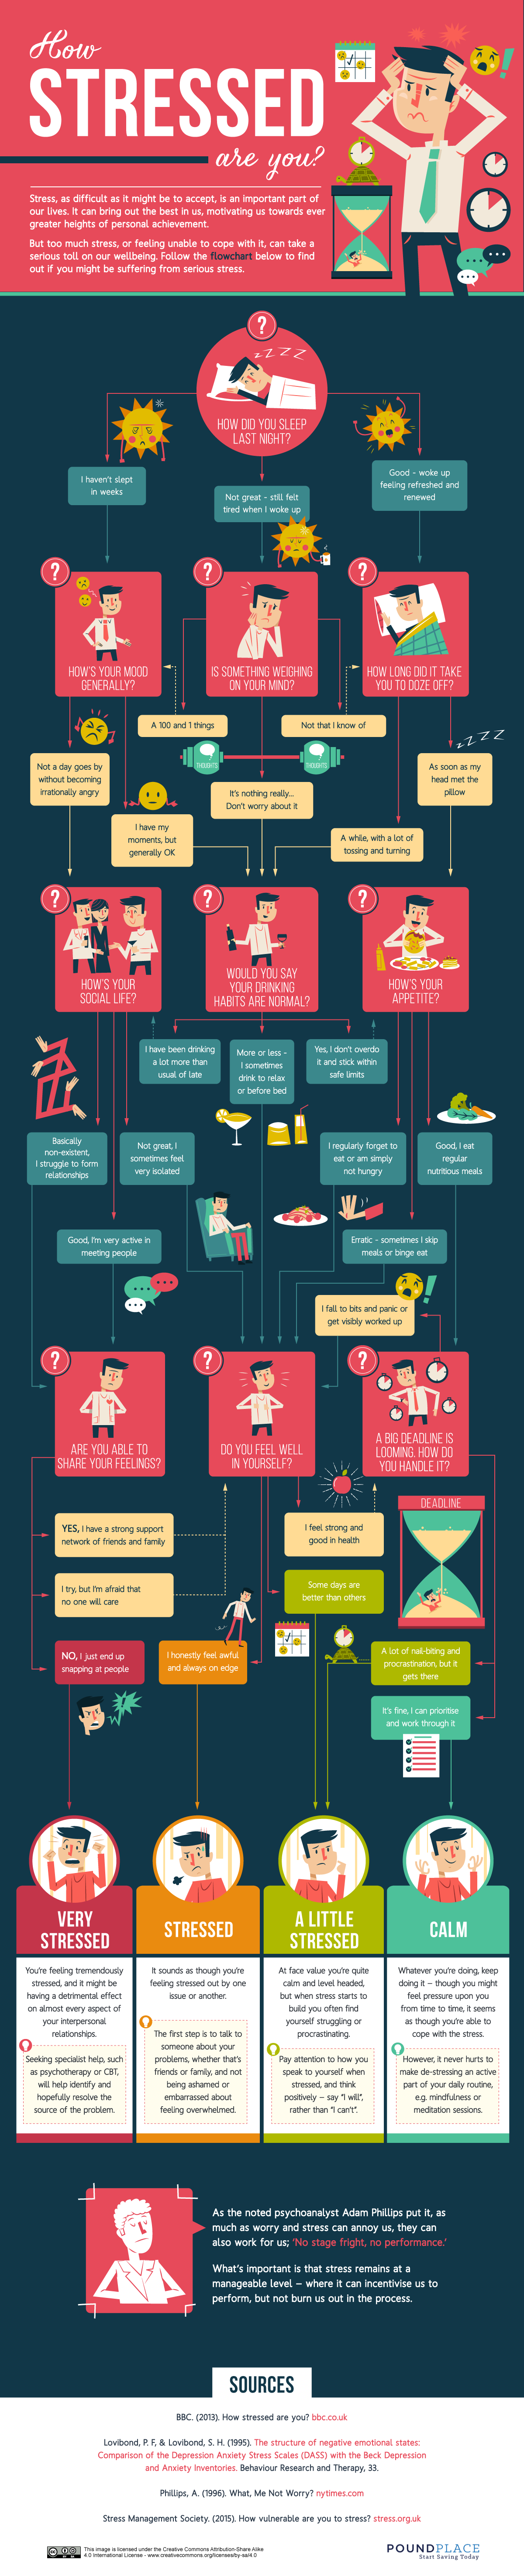 How Stressed Are You? #Infographic